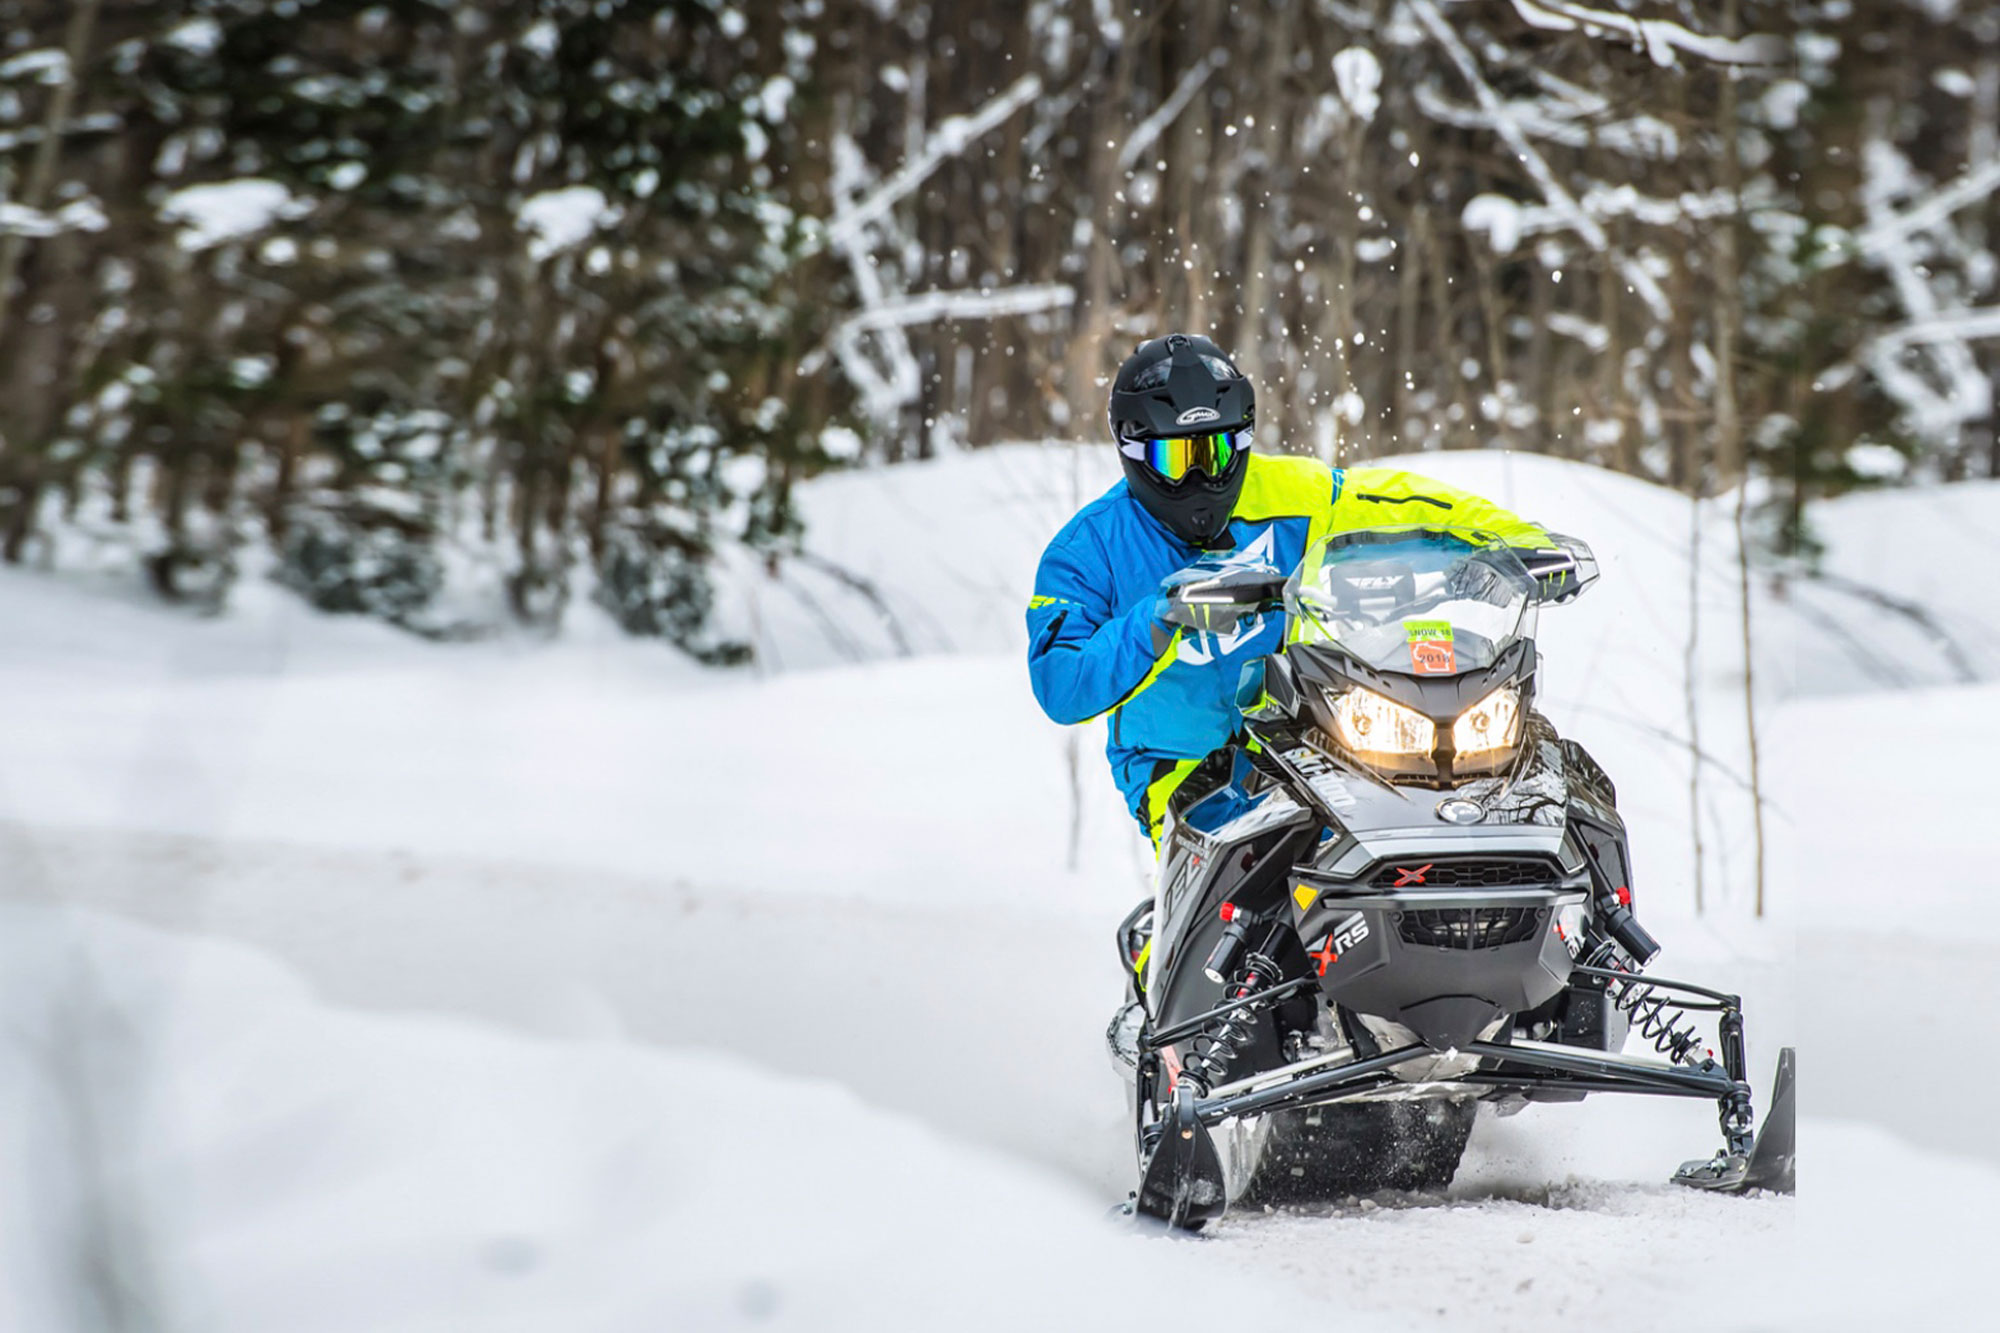 Home Snow – MBRP POWERSPORTS